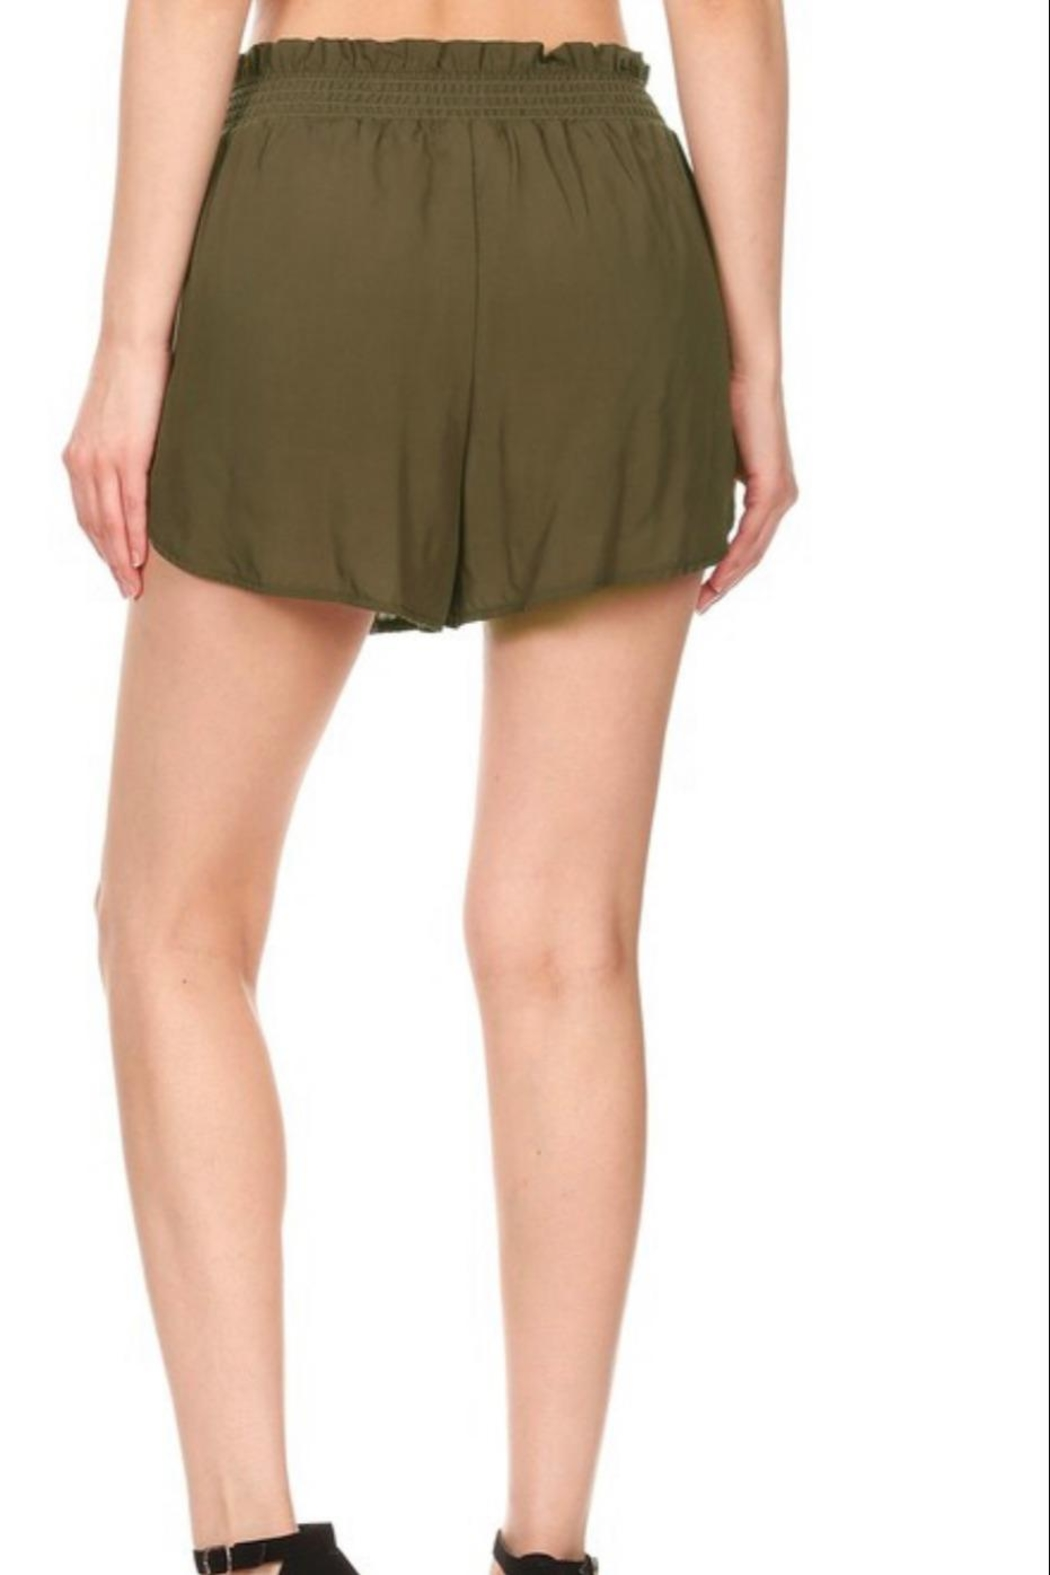 S&G Apparel Paper-Bag Waist Shorts - Front Full Image